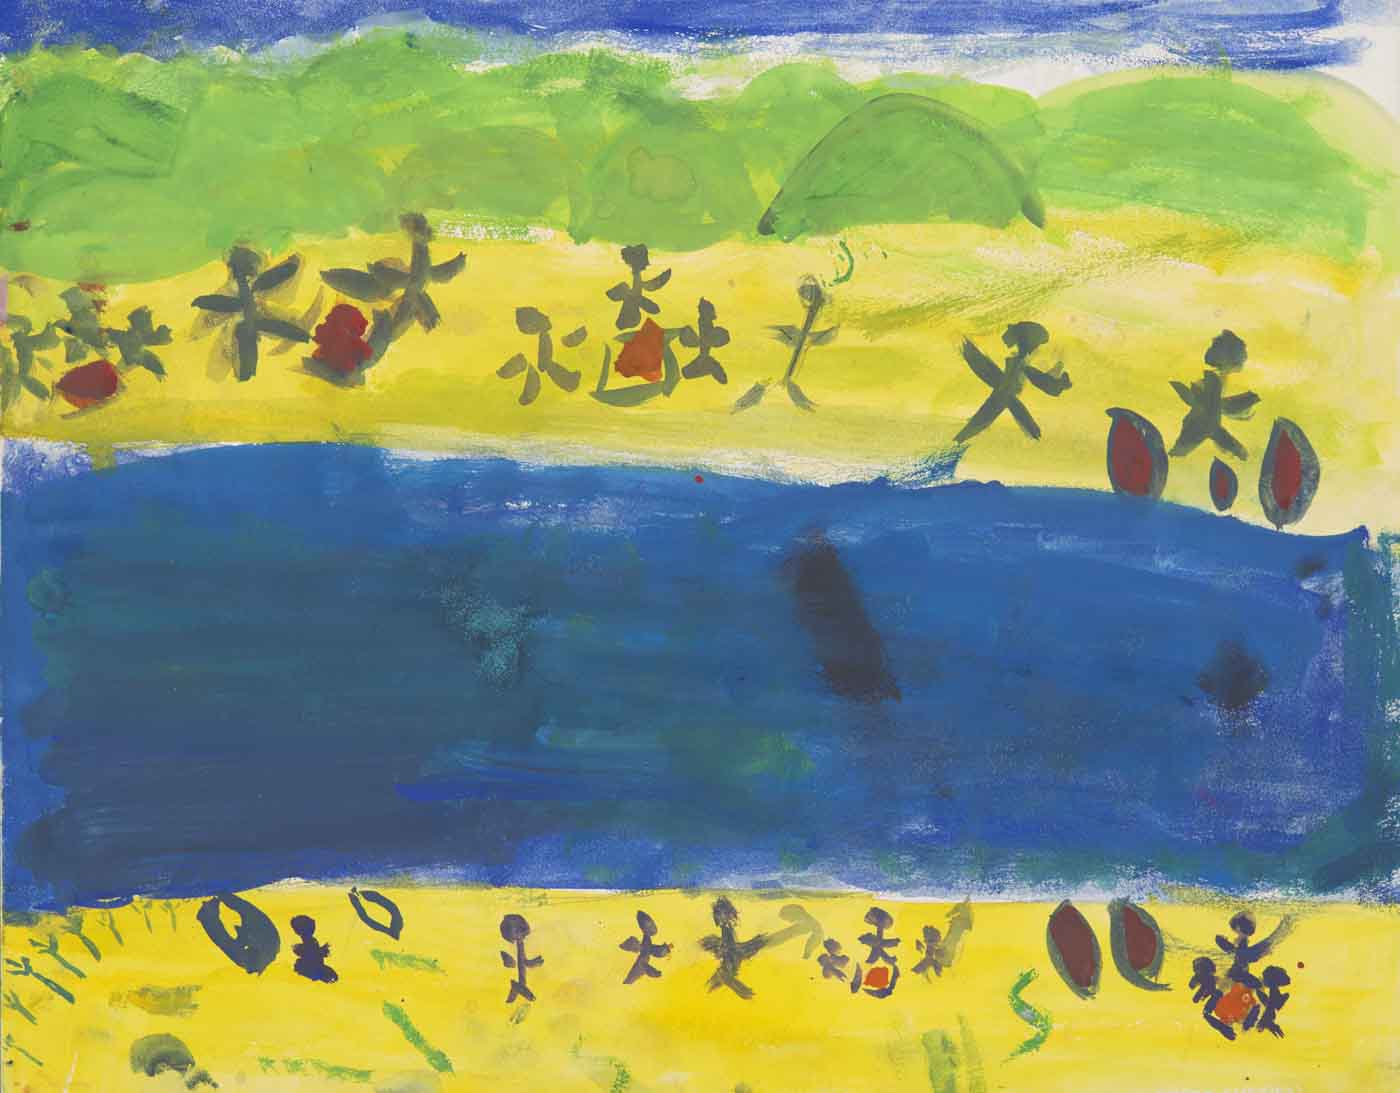 A child's painting of a landscape featuring water, beach and hills. - click to view larger image